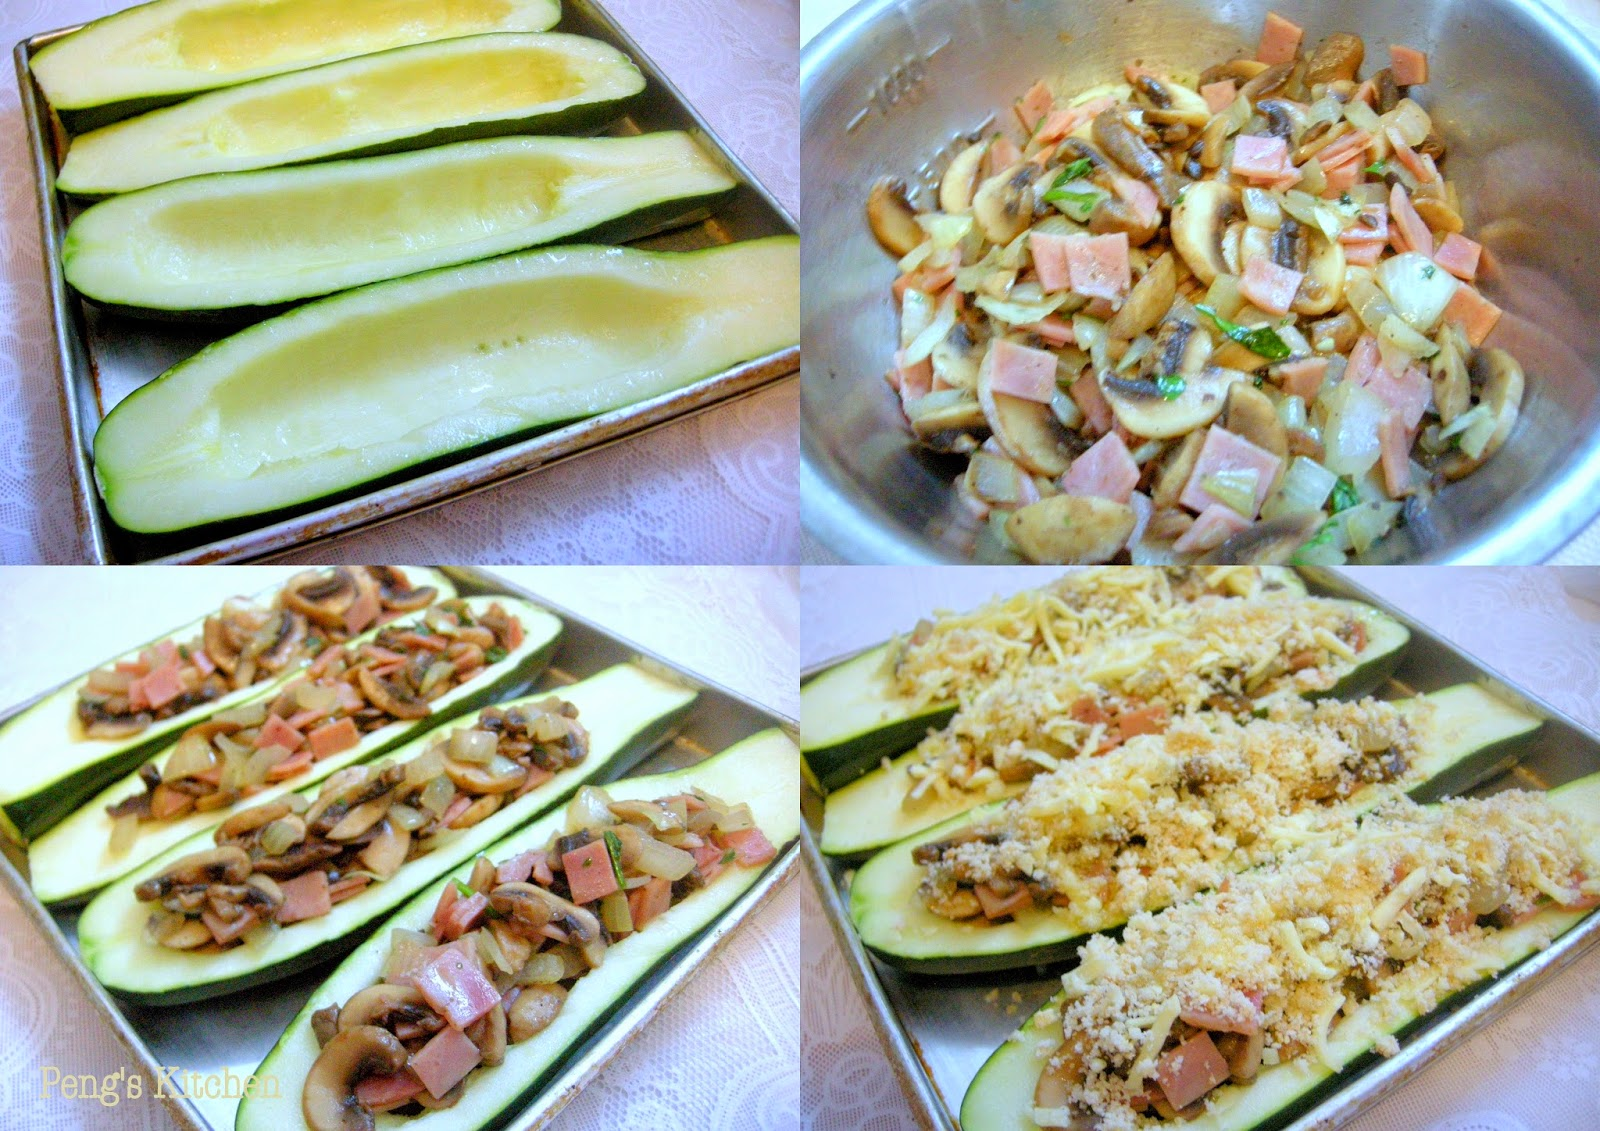 Peng's Kitchen: Stuffed Zucchini with Ham & Mushrooms